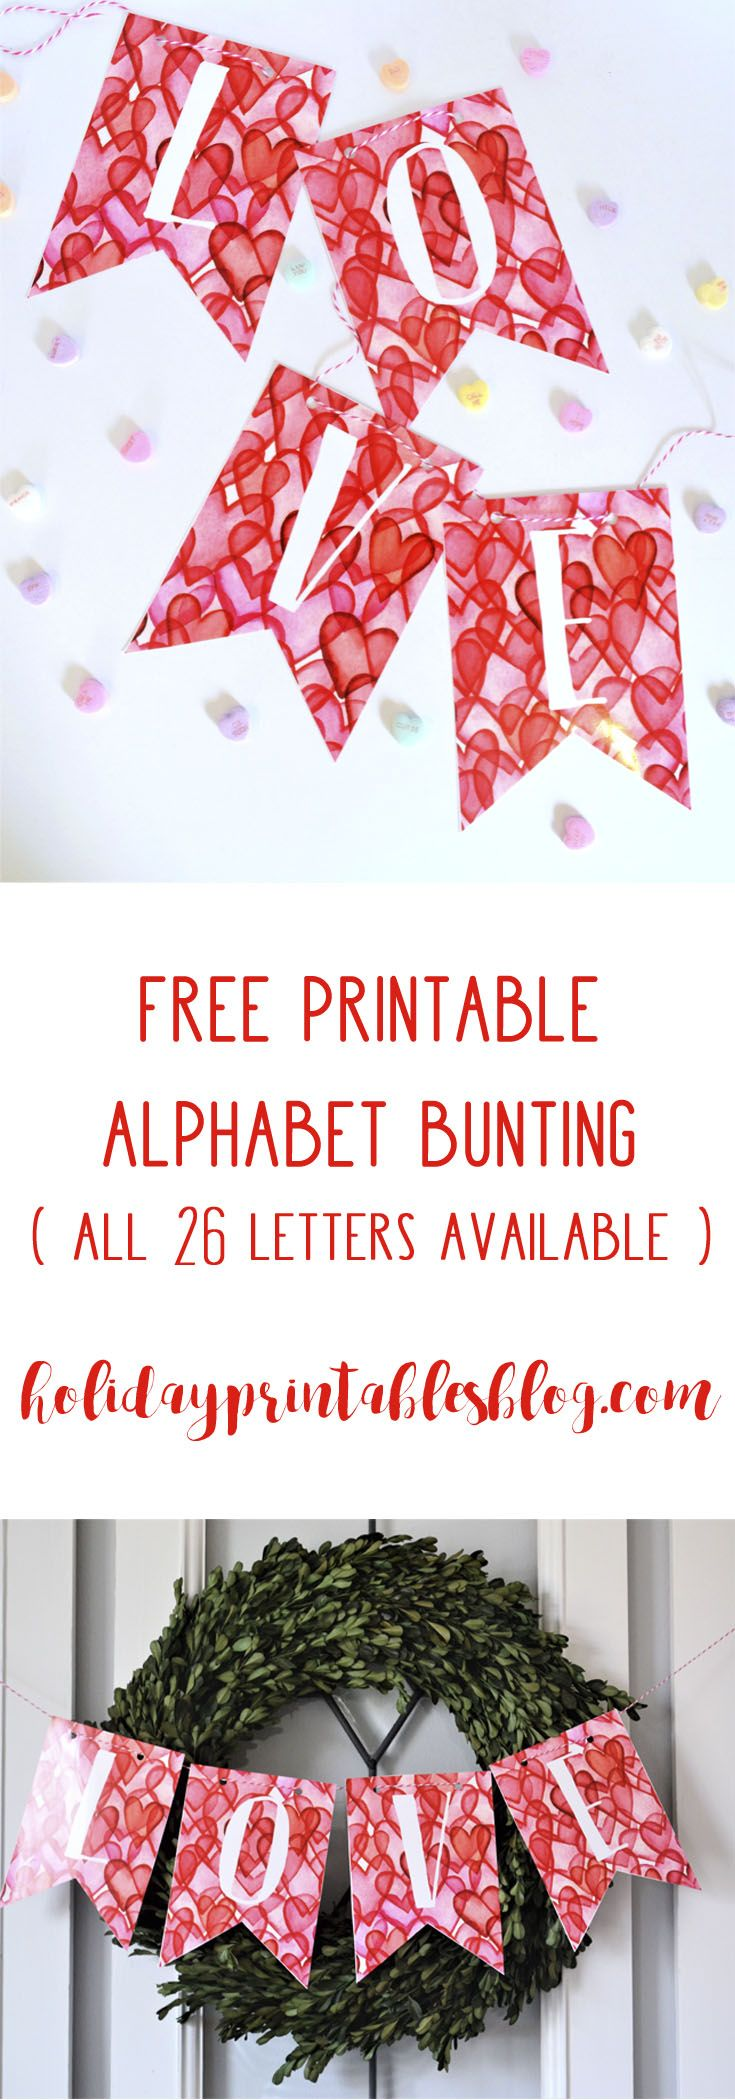 Free Printable Alphabet Banner Perfect For ValentineS Day